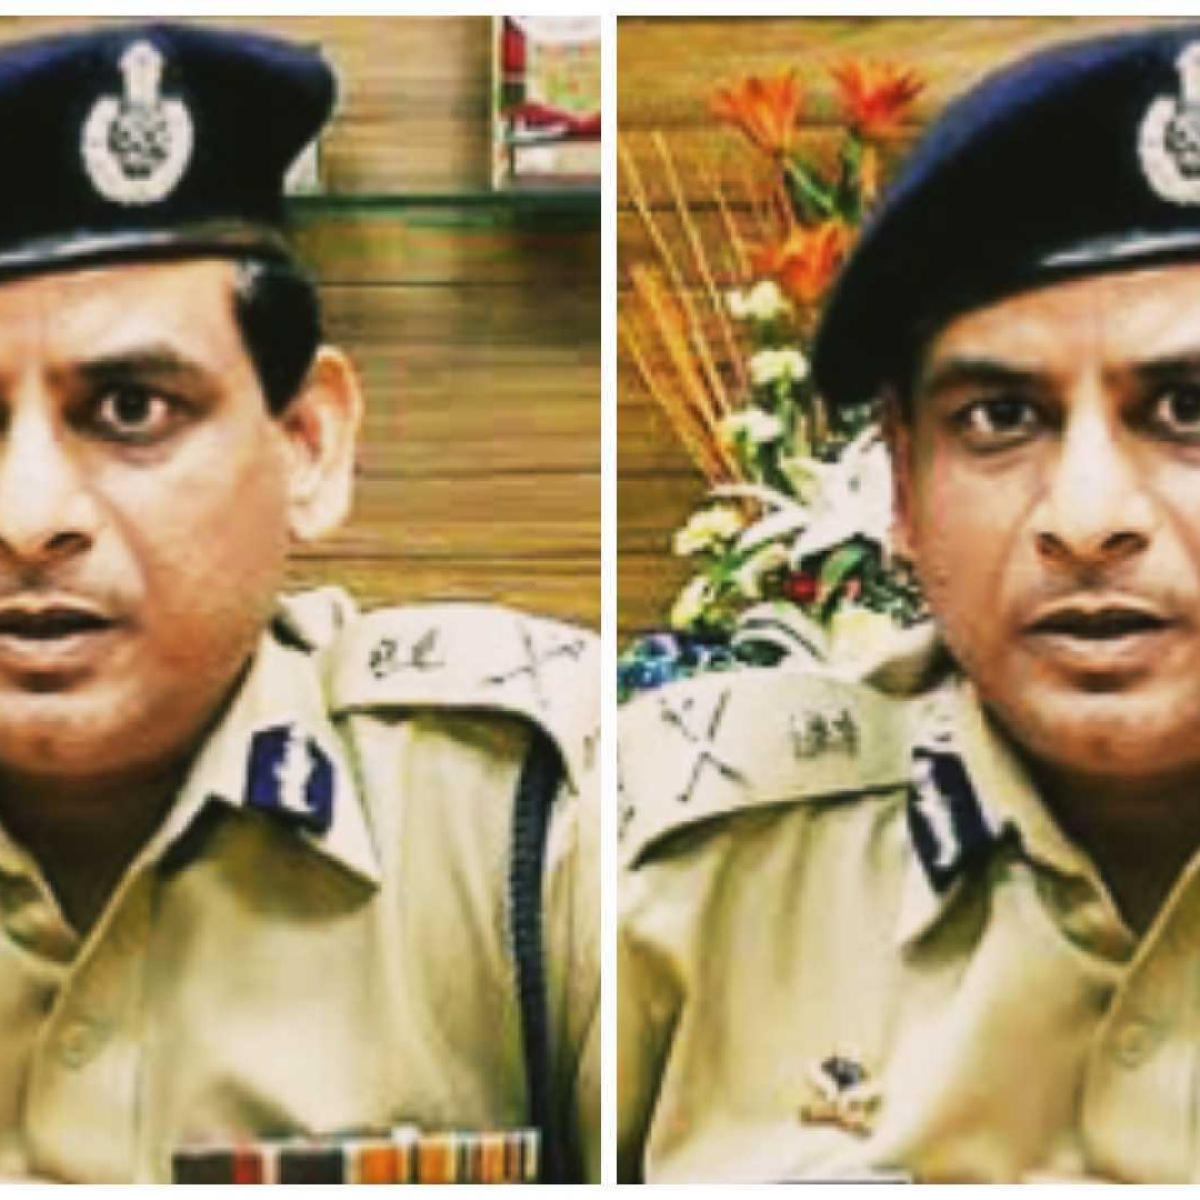 Corruption has become part of government system, admits Maharashtra DGP Hemant Nagrale